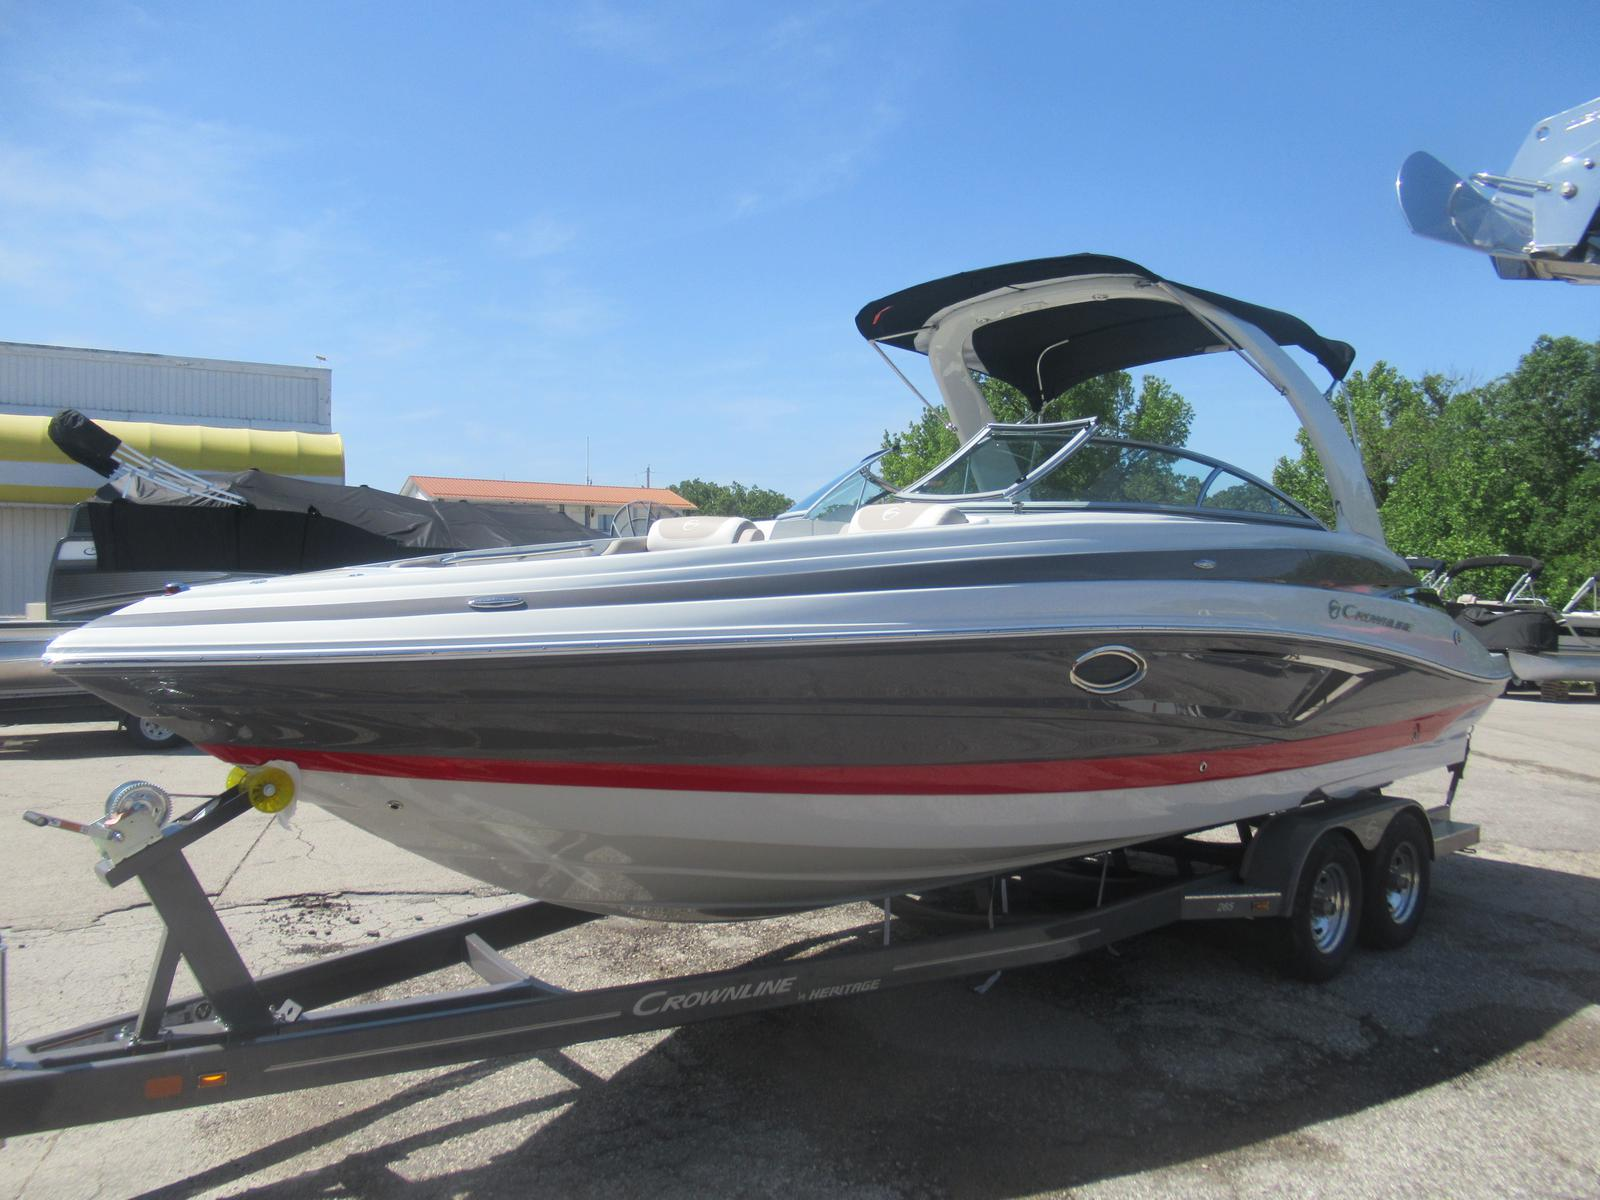 2019 Crownline 265 SS for sale in Osage Beach, MO  All About